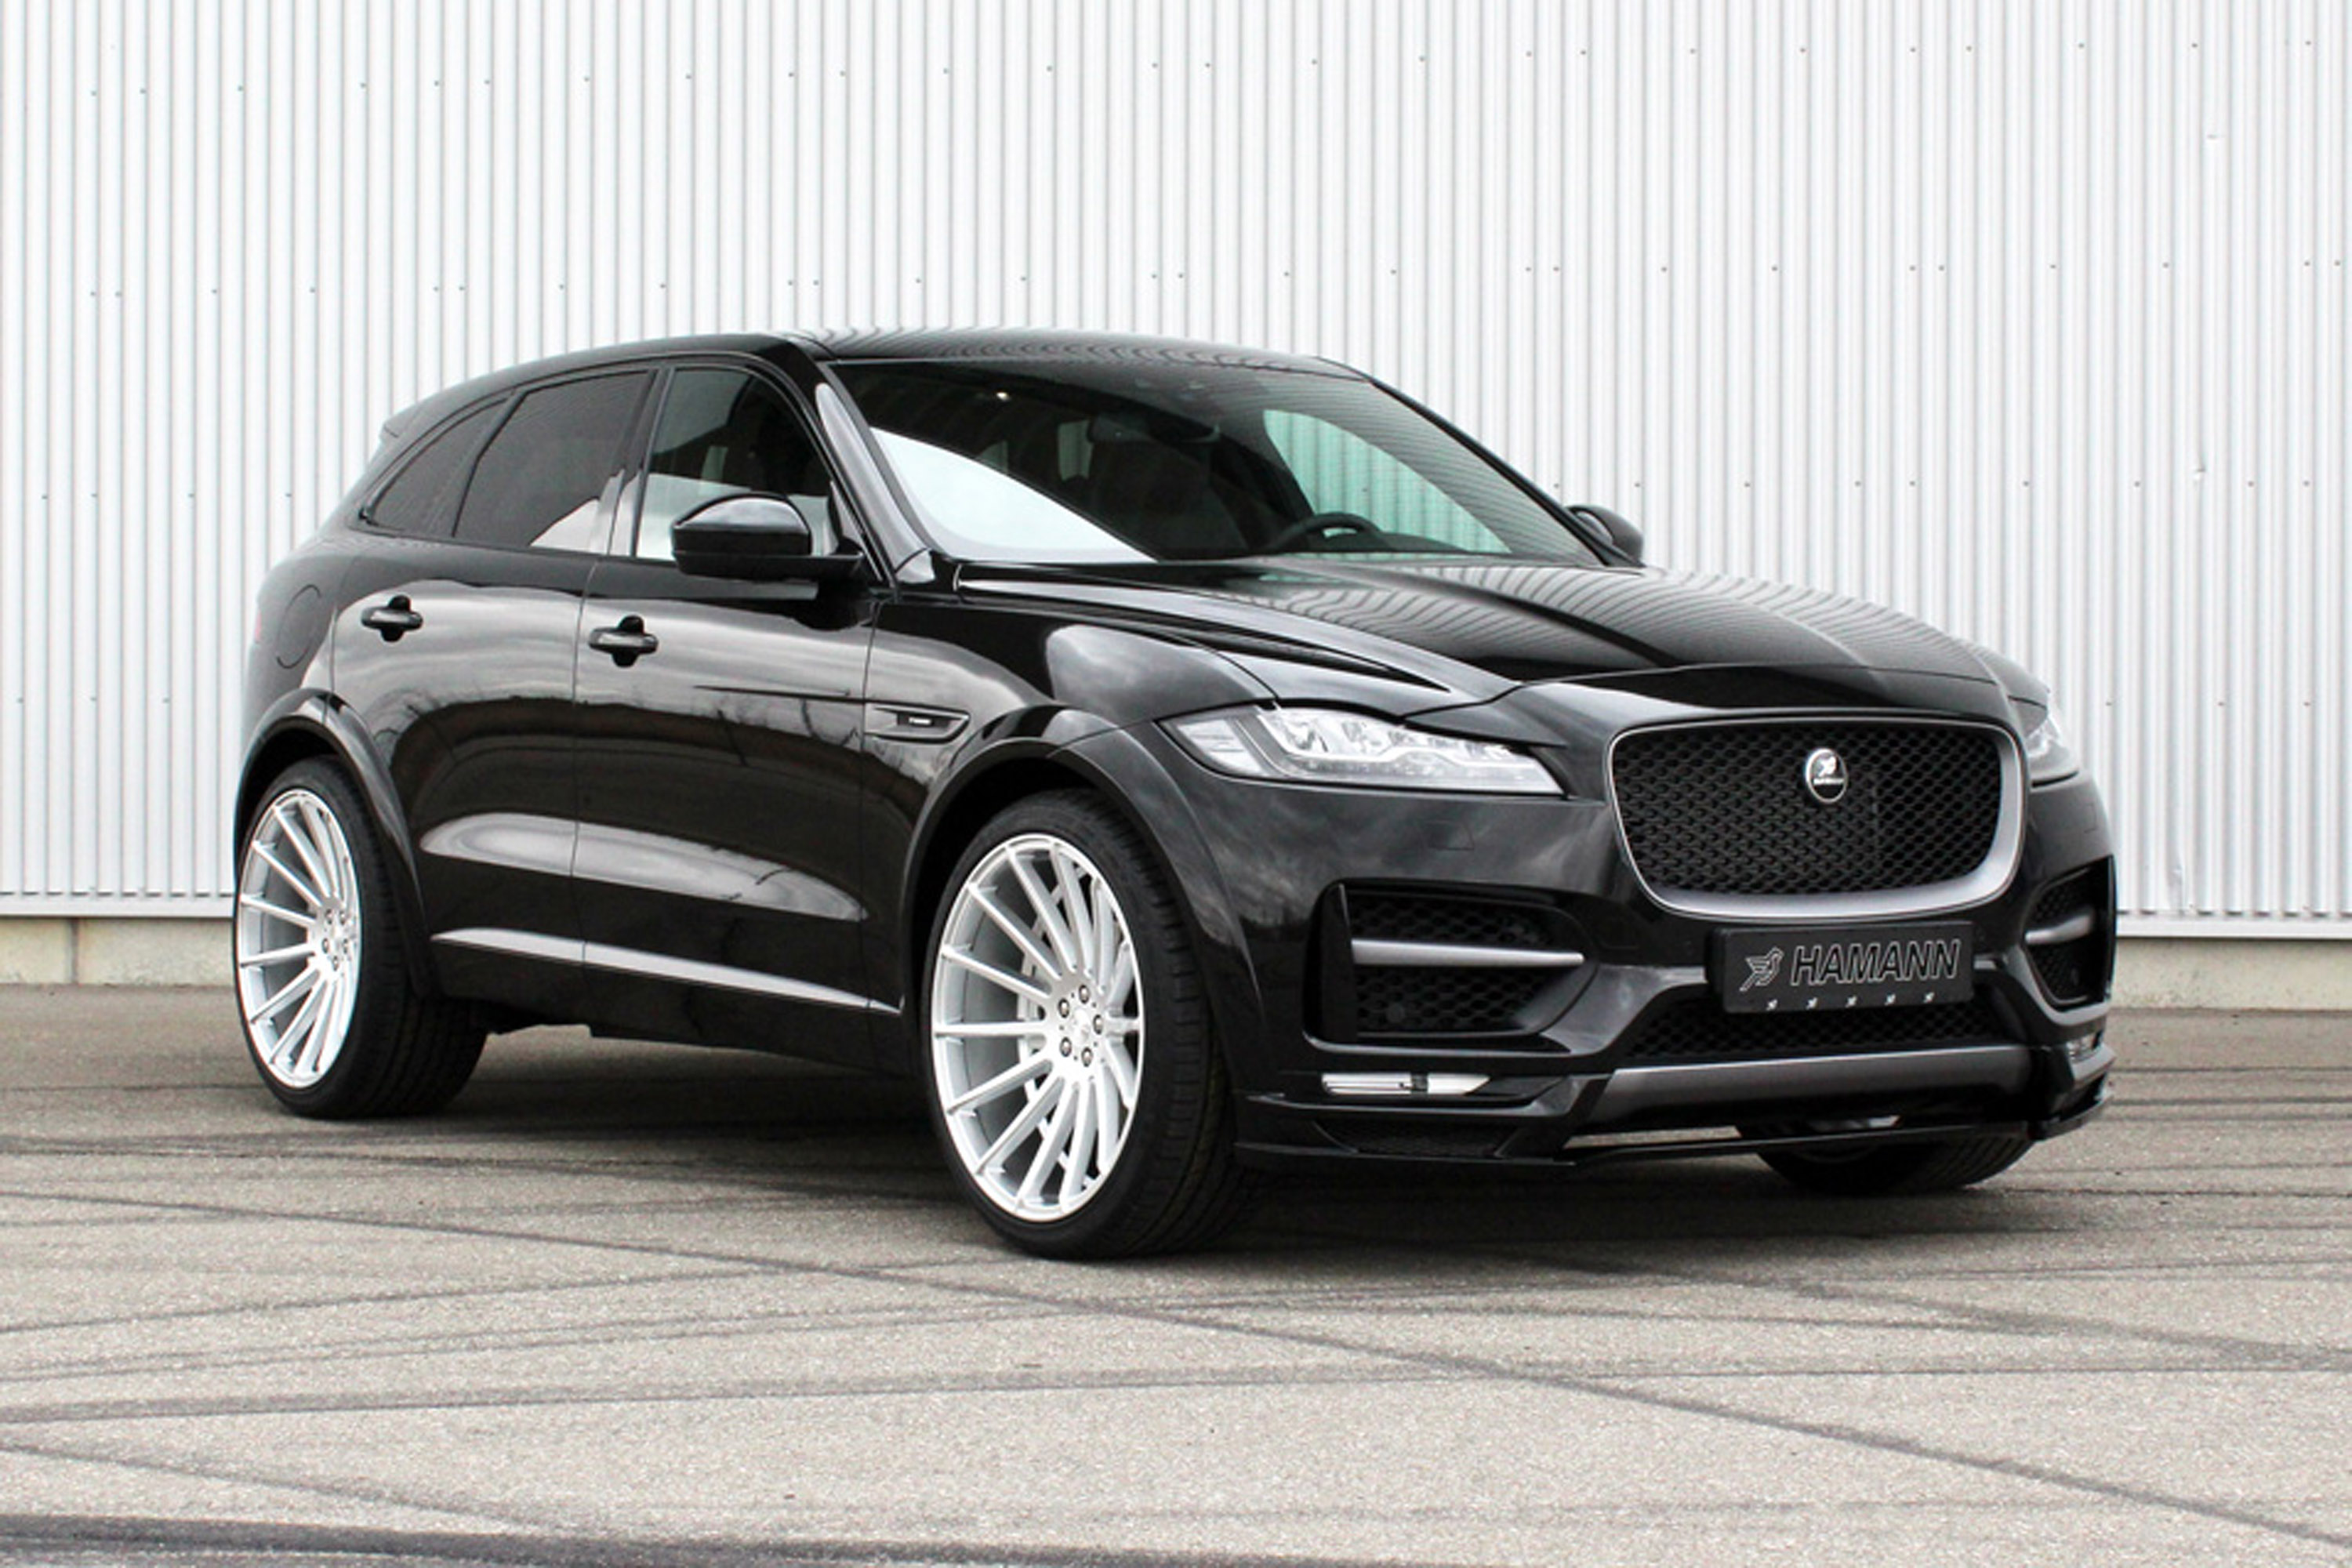 hamann team reveals a tweaked jaguar f pace suv. Black Bedroom Furniture Sets. Home Design Ideas